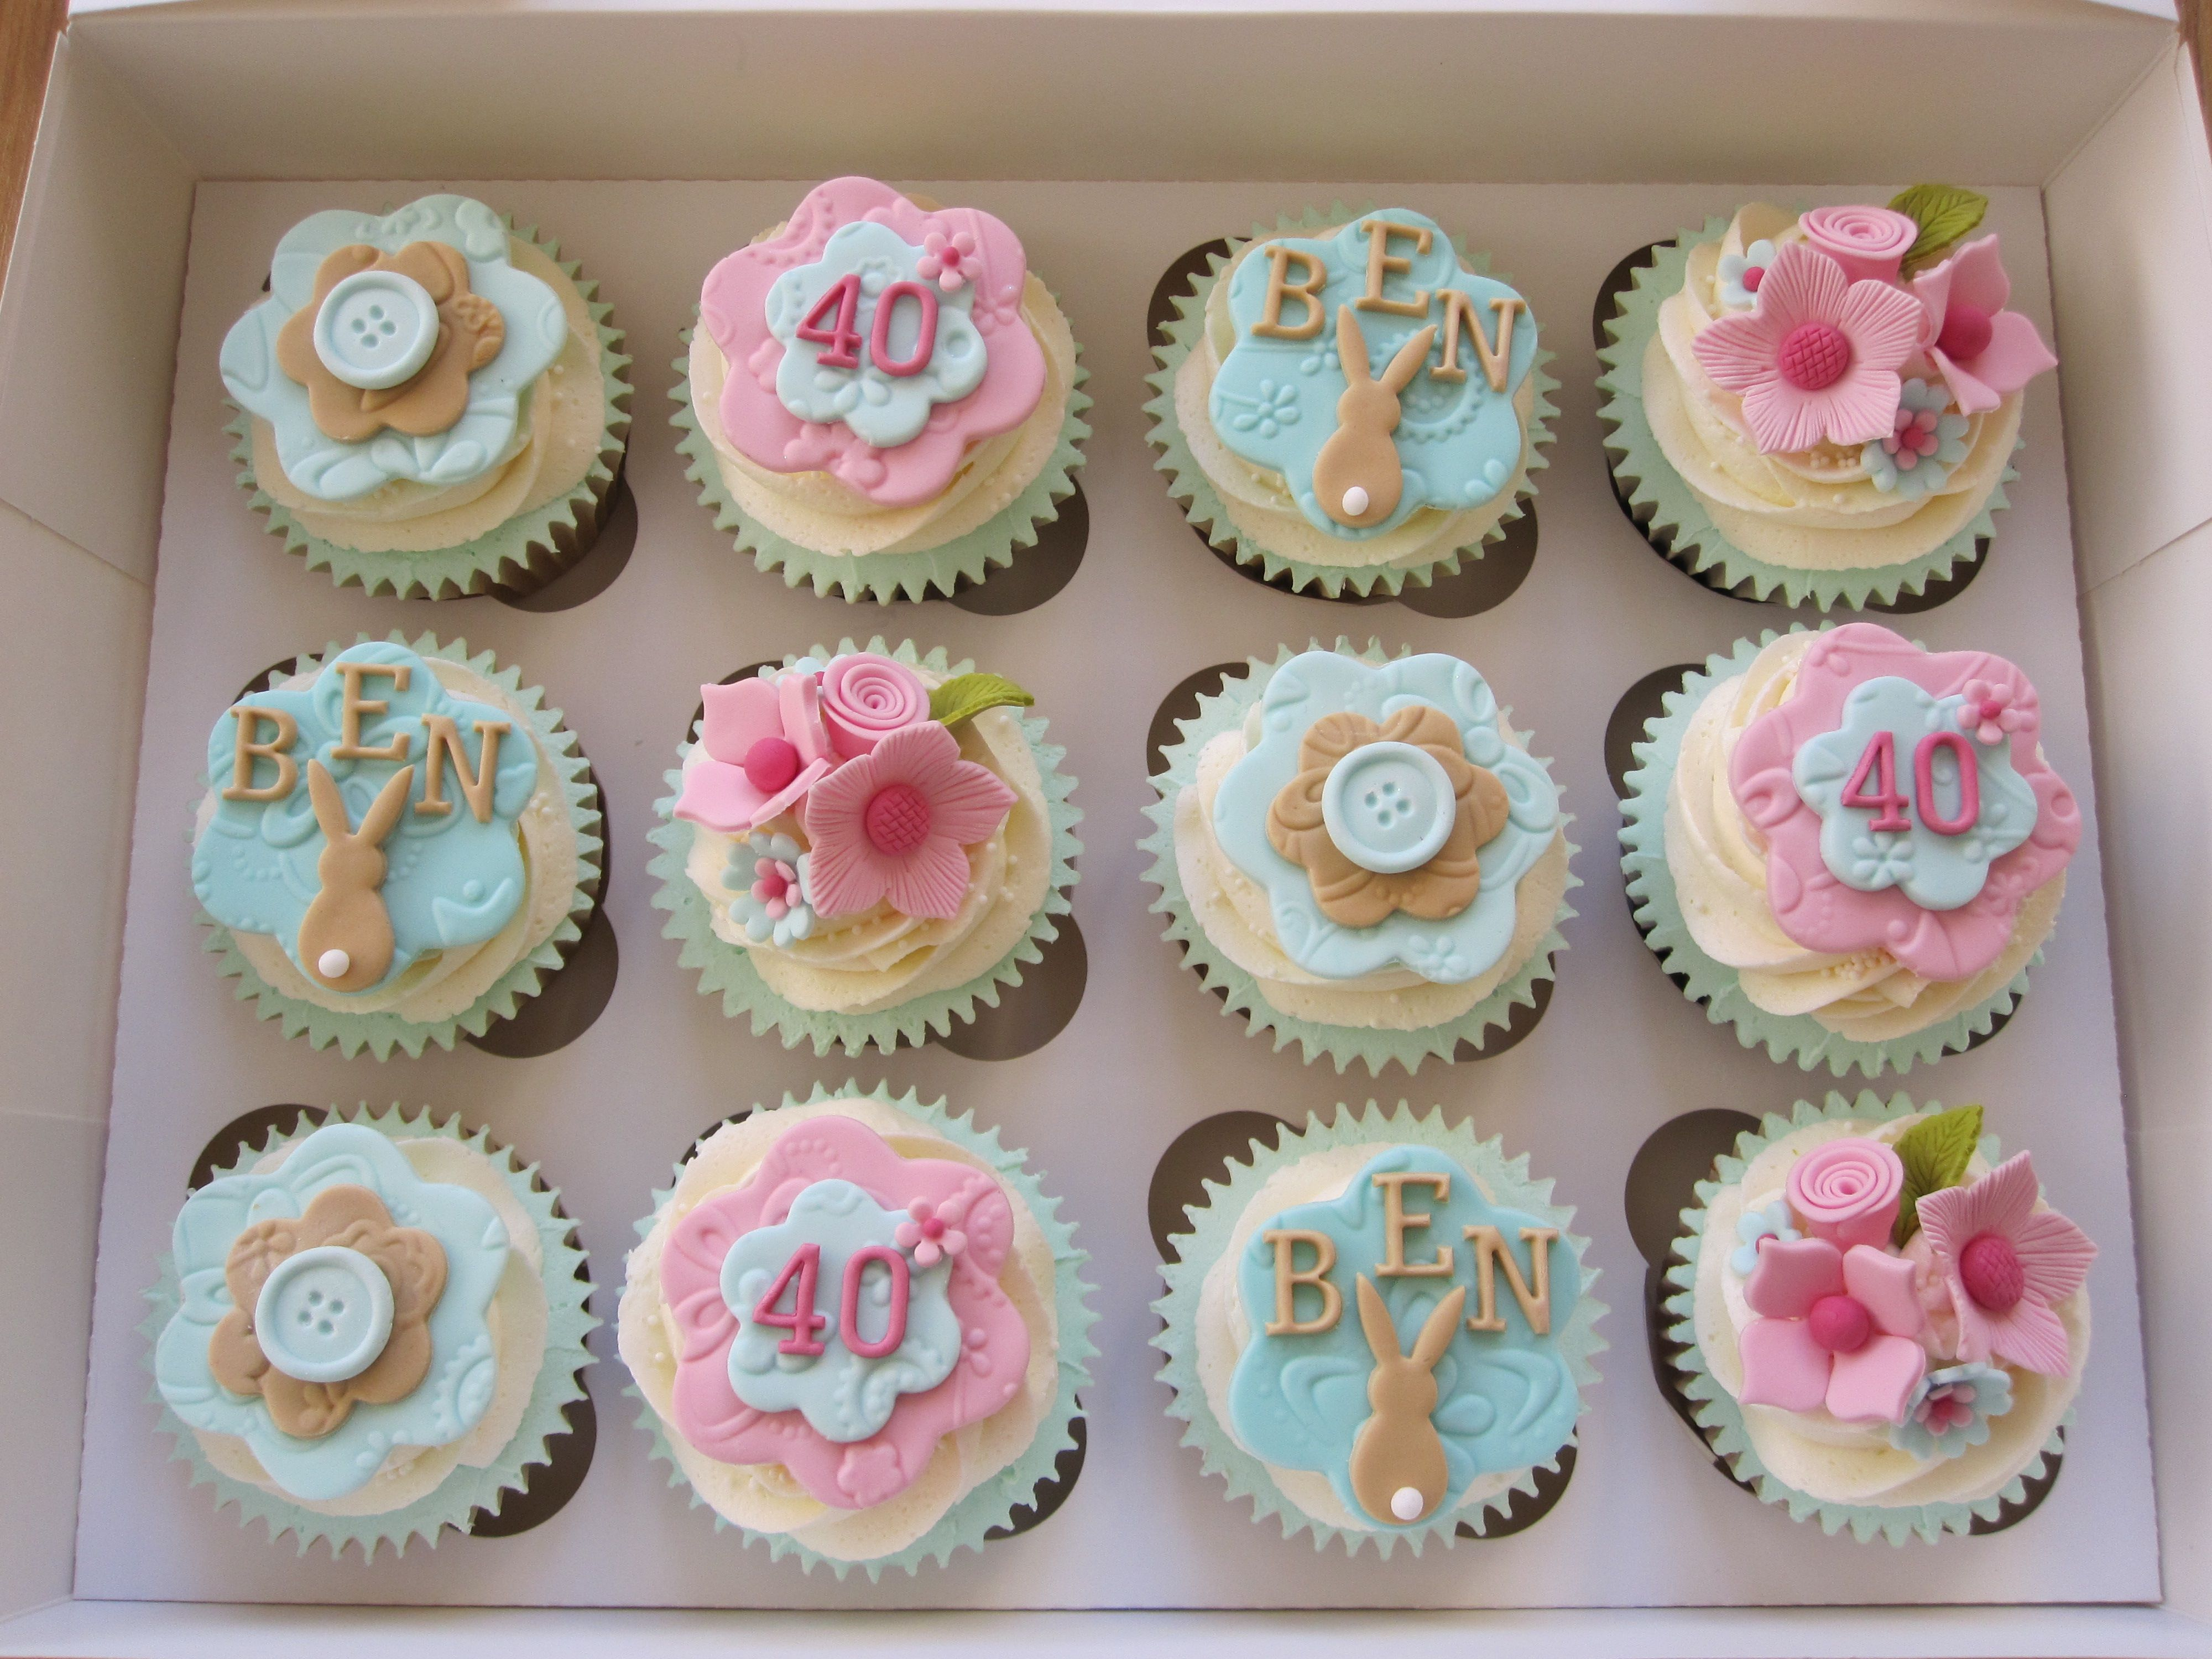 40Th Birthday Cake Ideas For Her Cupcakes Made A Lady Who Was Celebrating 40th And